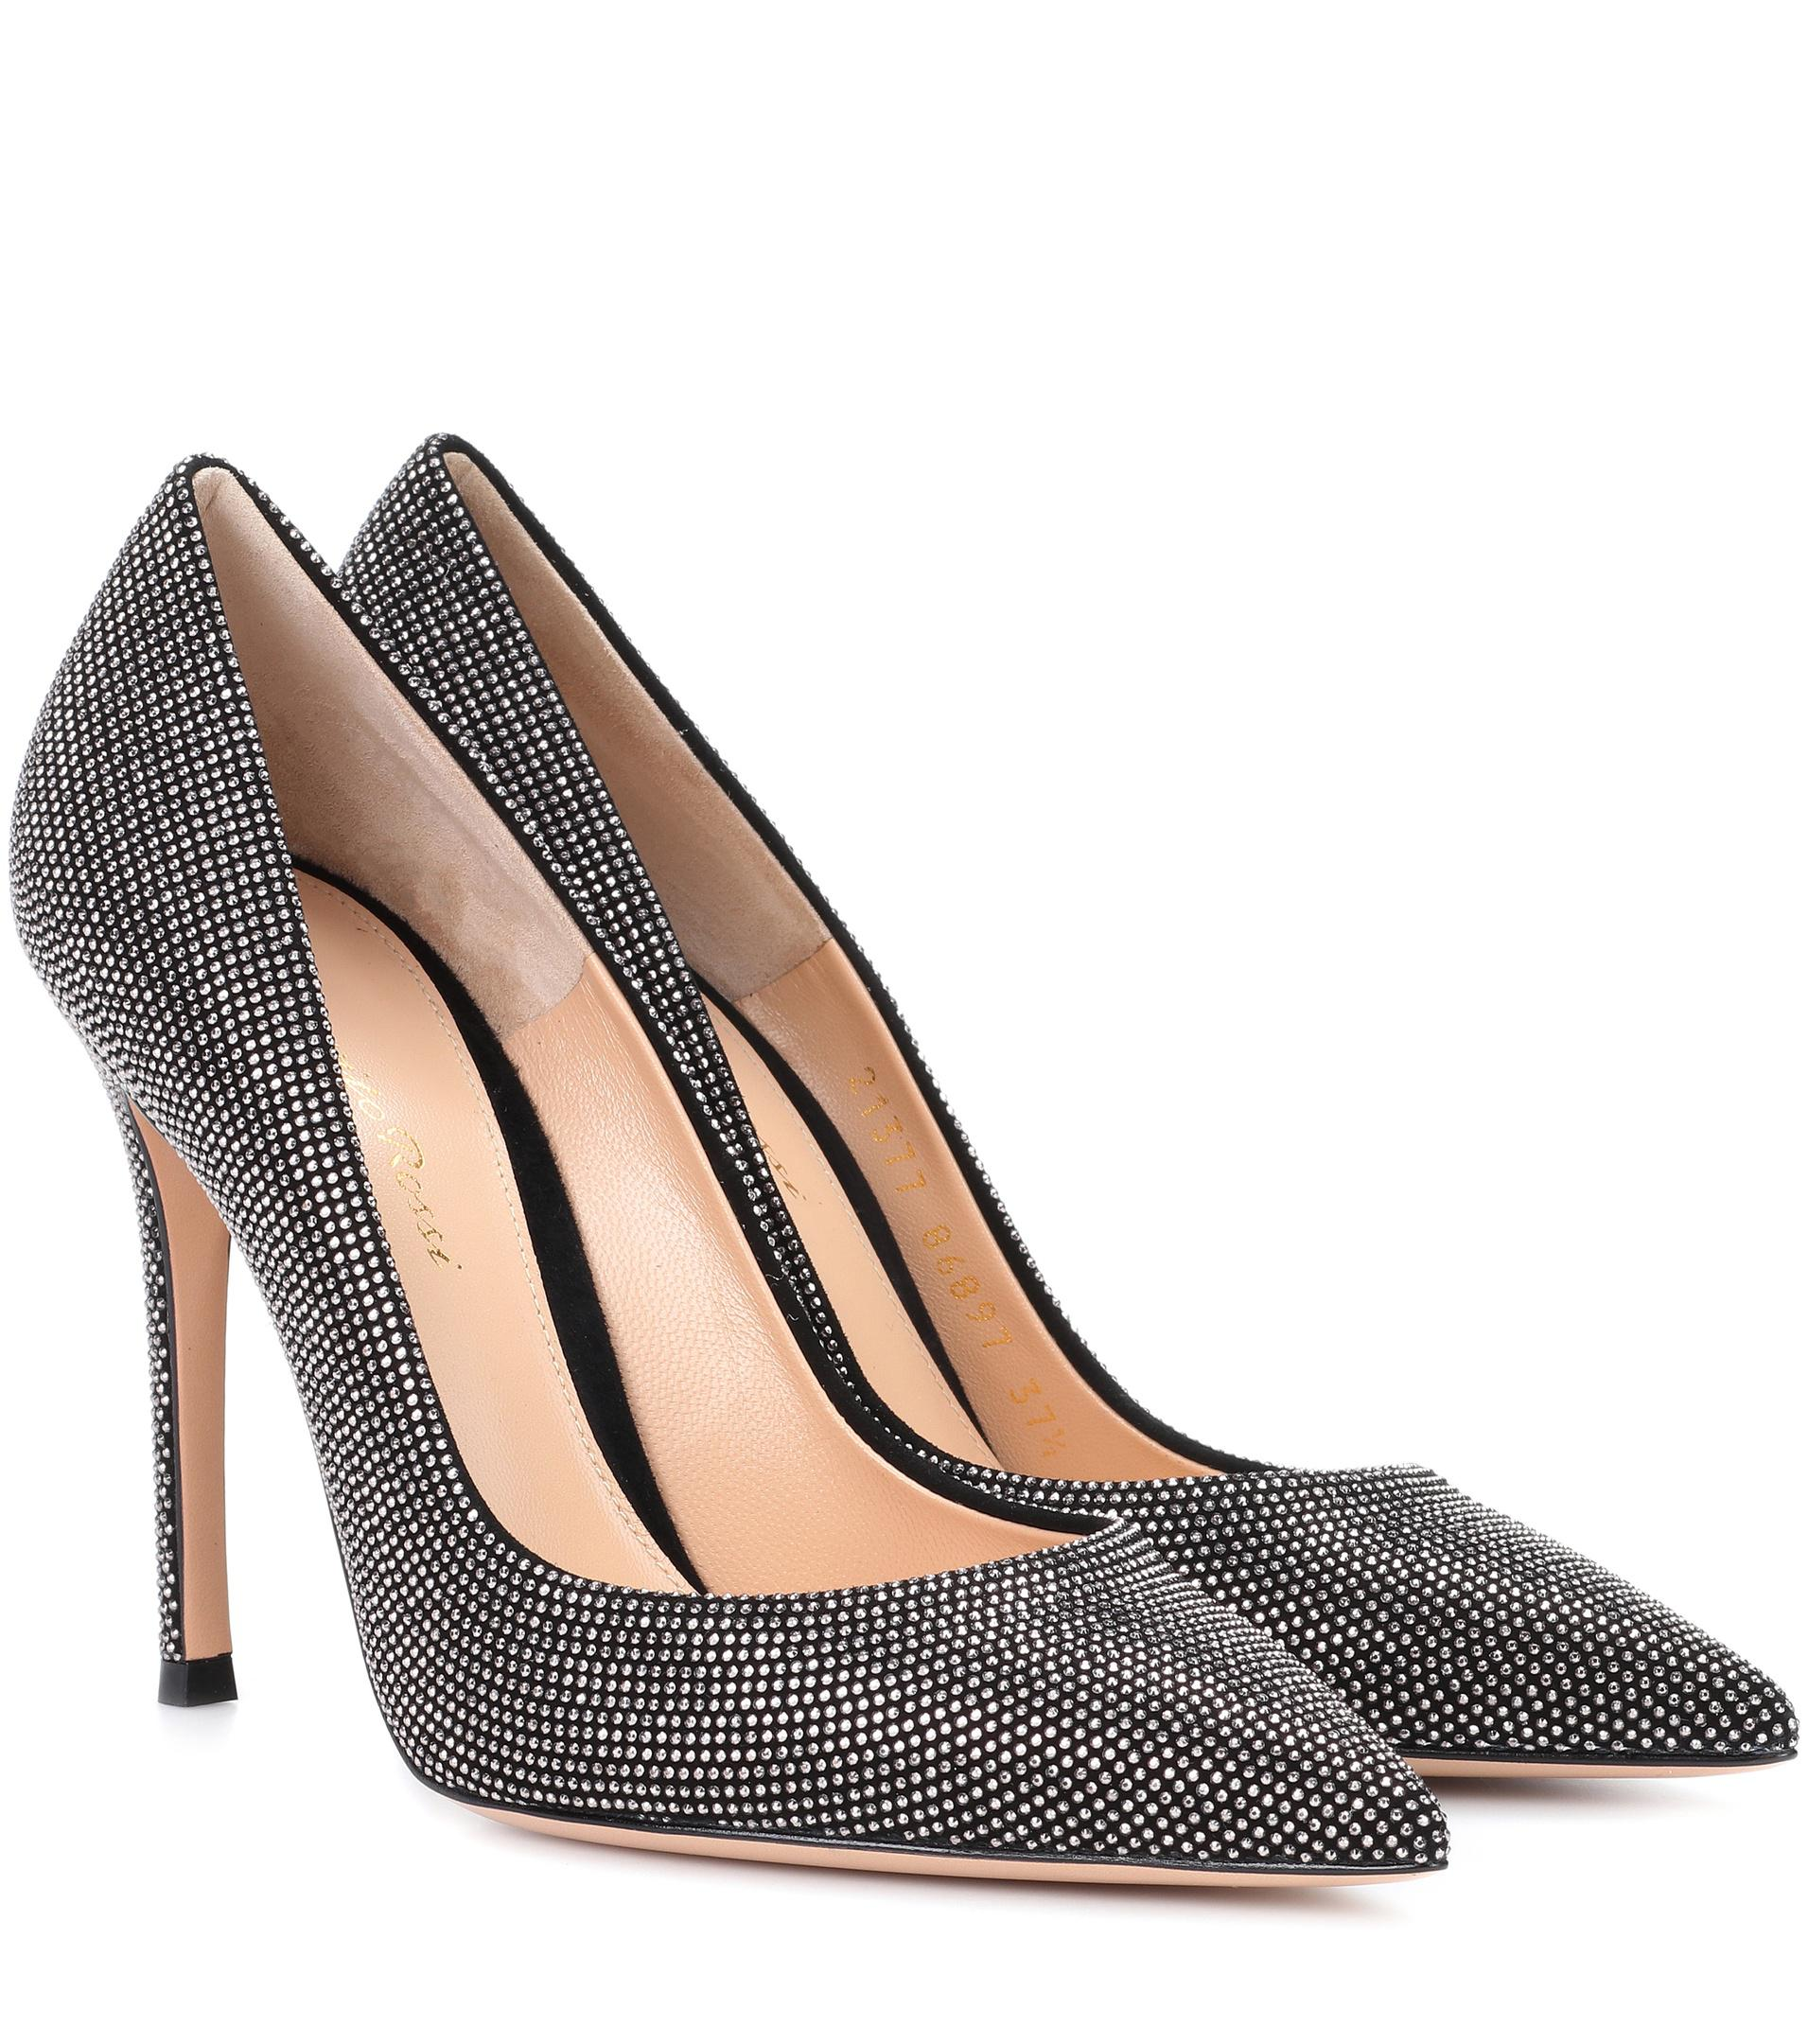 Pumps GIANVITO 85 suede black Gianvito Rossi FLUfSf